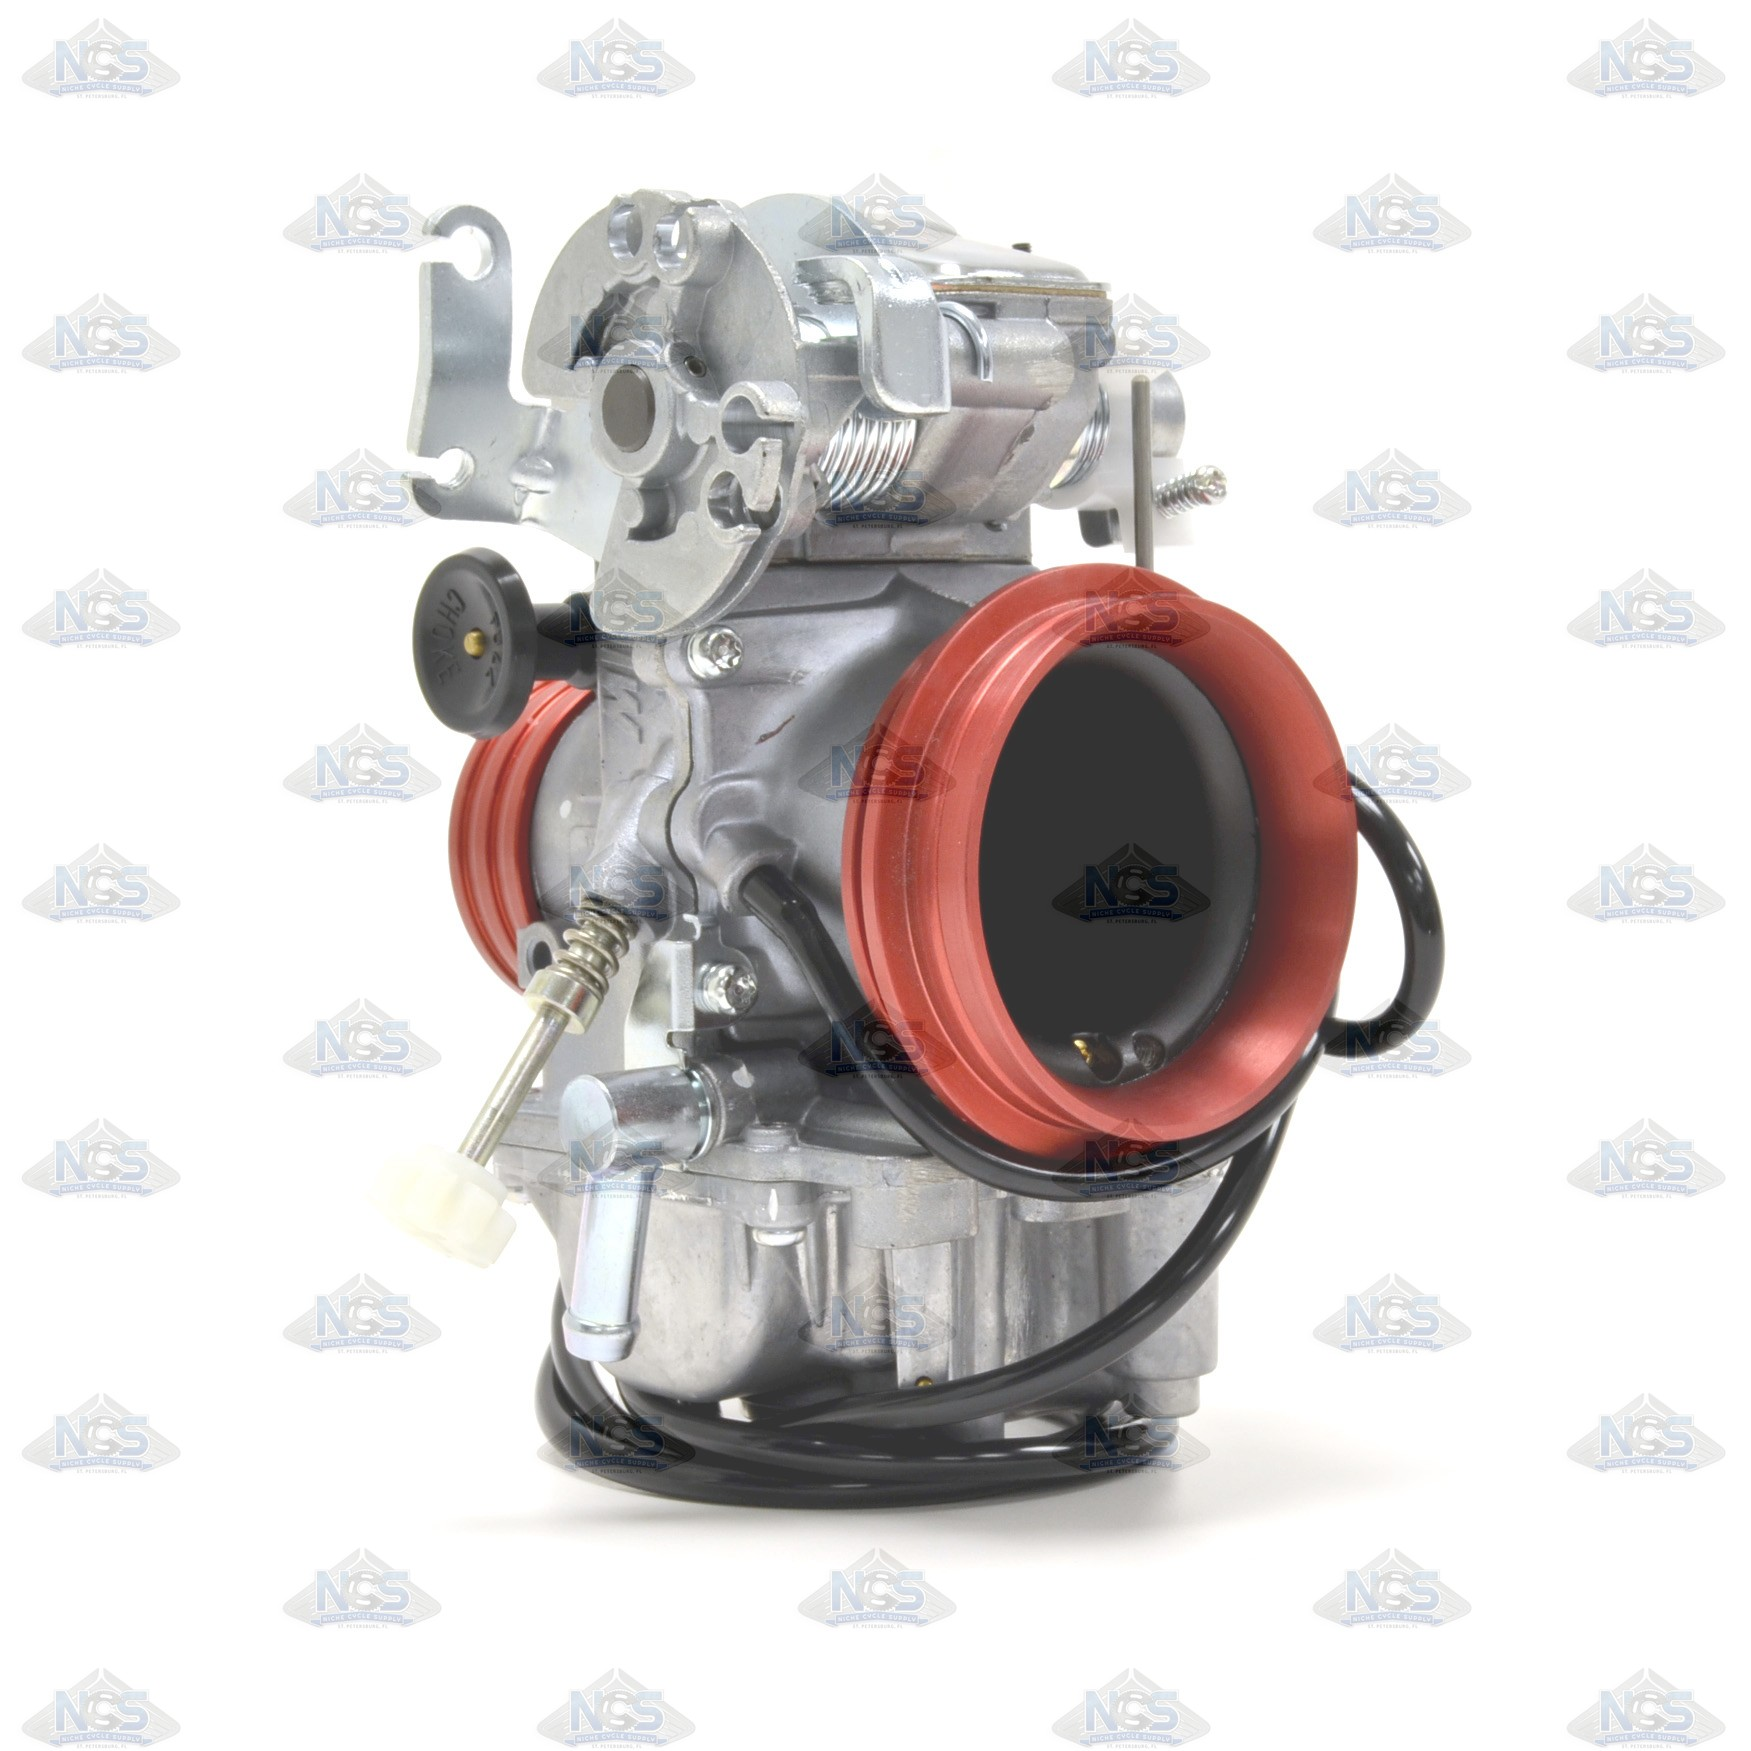 Find great deals on eBay for xrr carburetor. Shop with confidence.